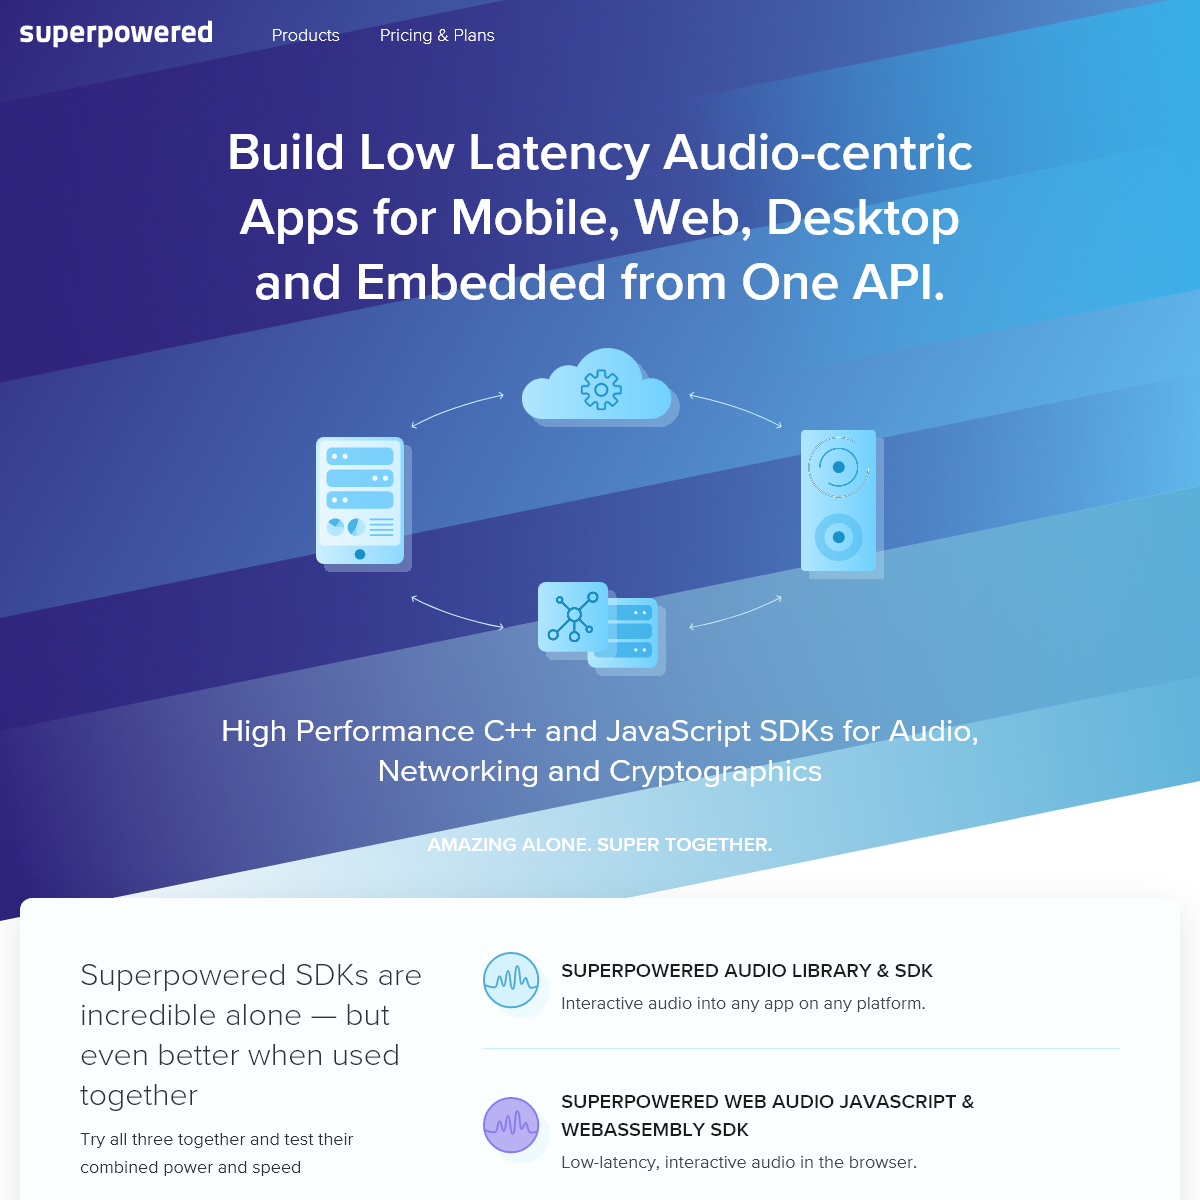 Build Low Latency Audio-centric Apps for Mobile, Web, Desktop and Embedded from One API - Superpowered